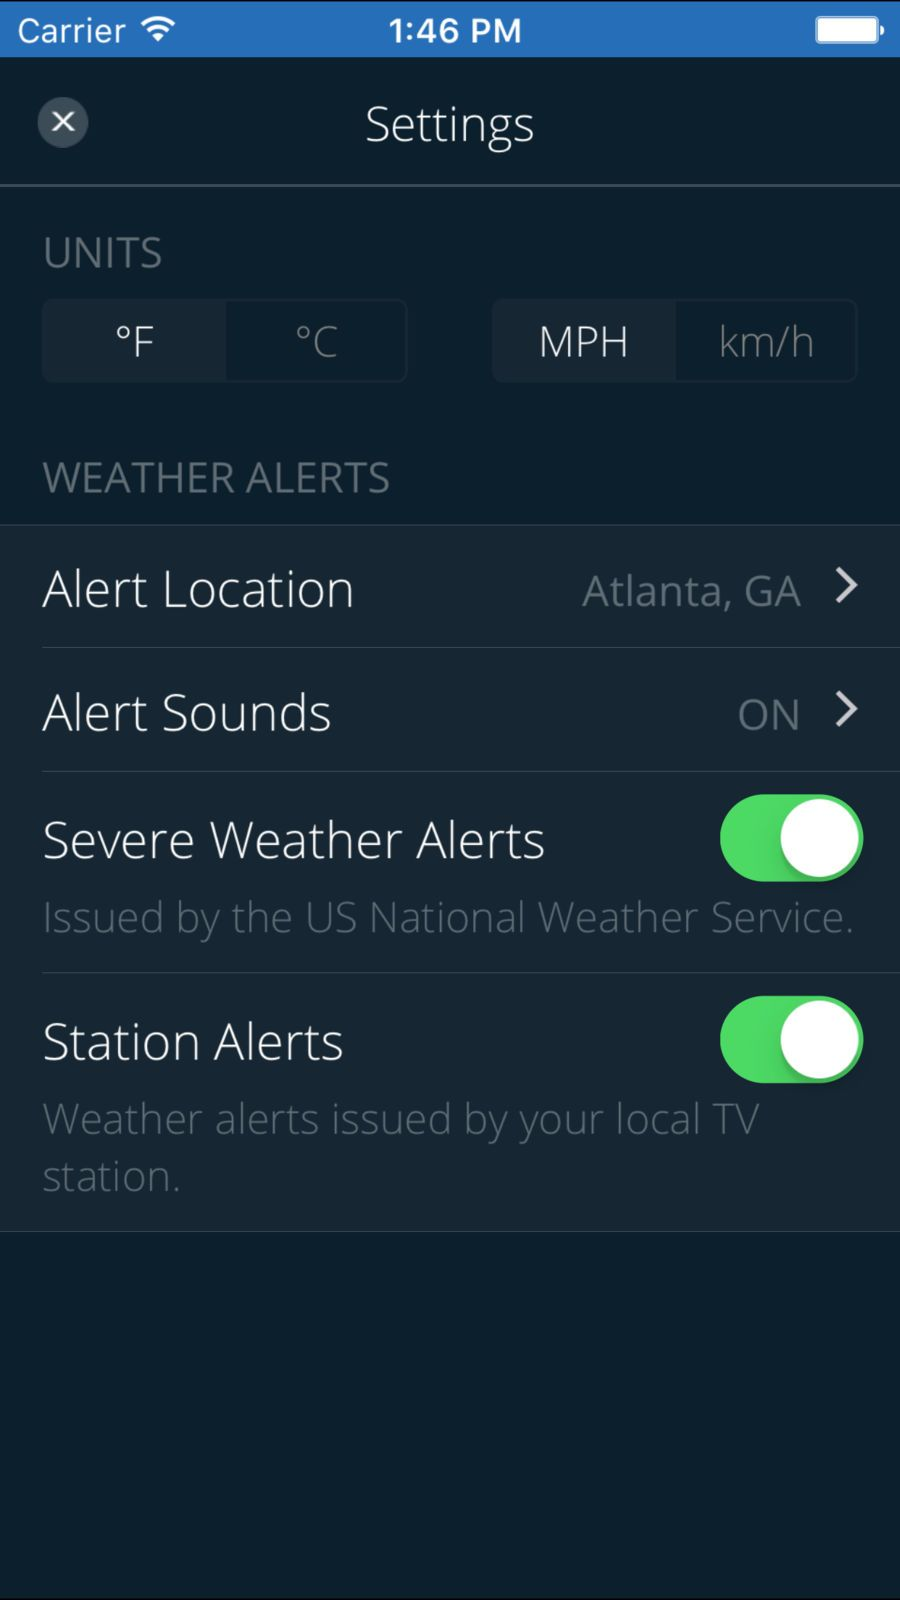 11Alive WX NewsWeatherappsios Local tv stations